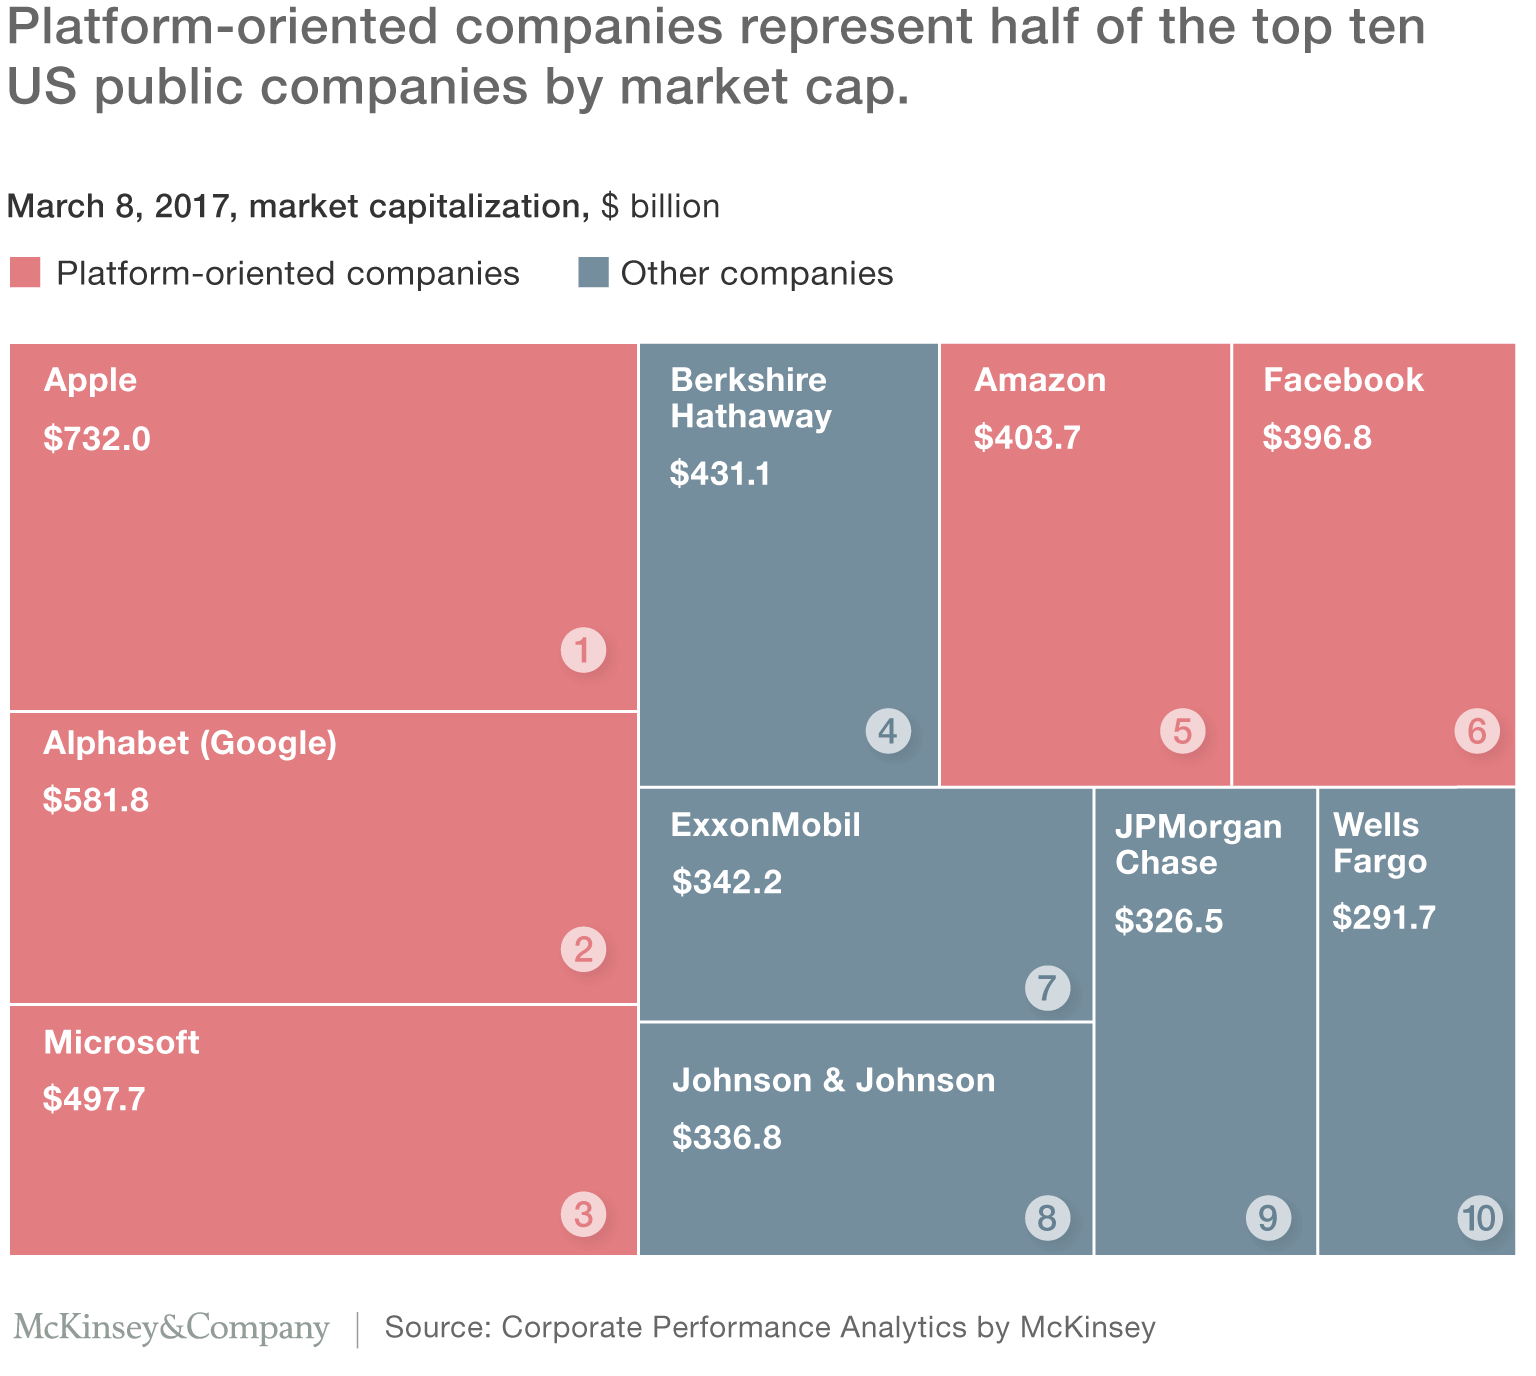 Platform-oriented companies represent half of the top ten US public companies by market cap.